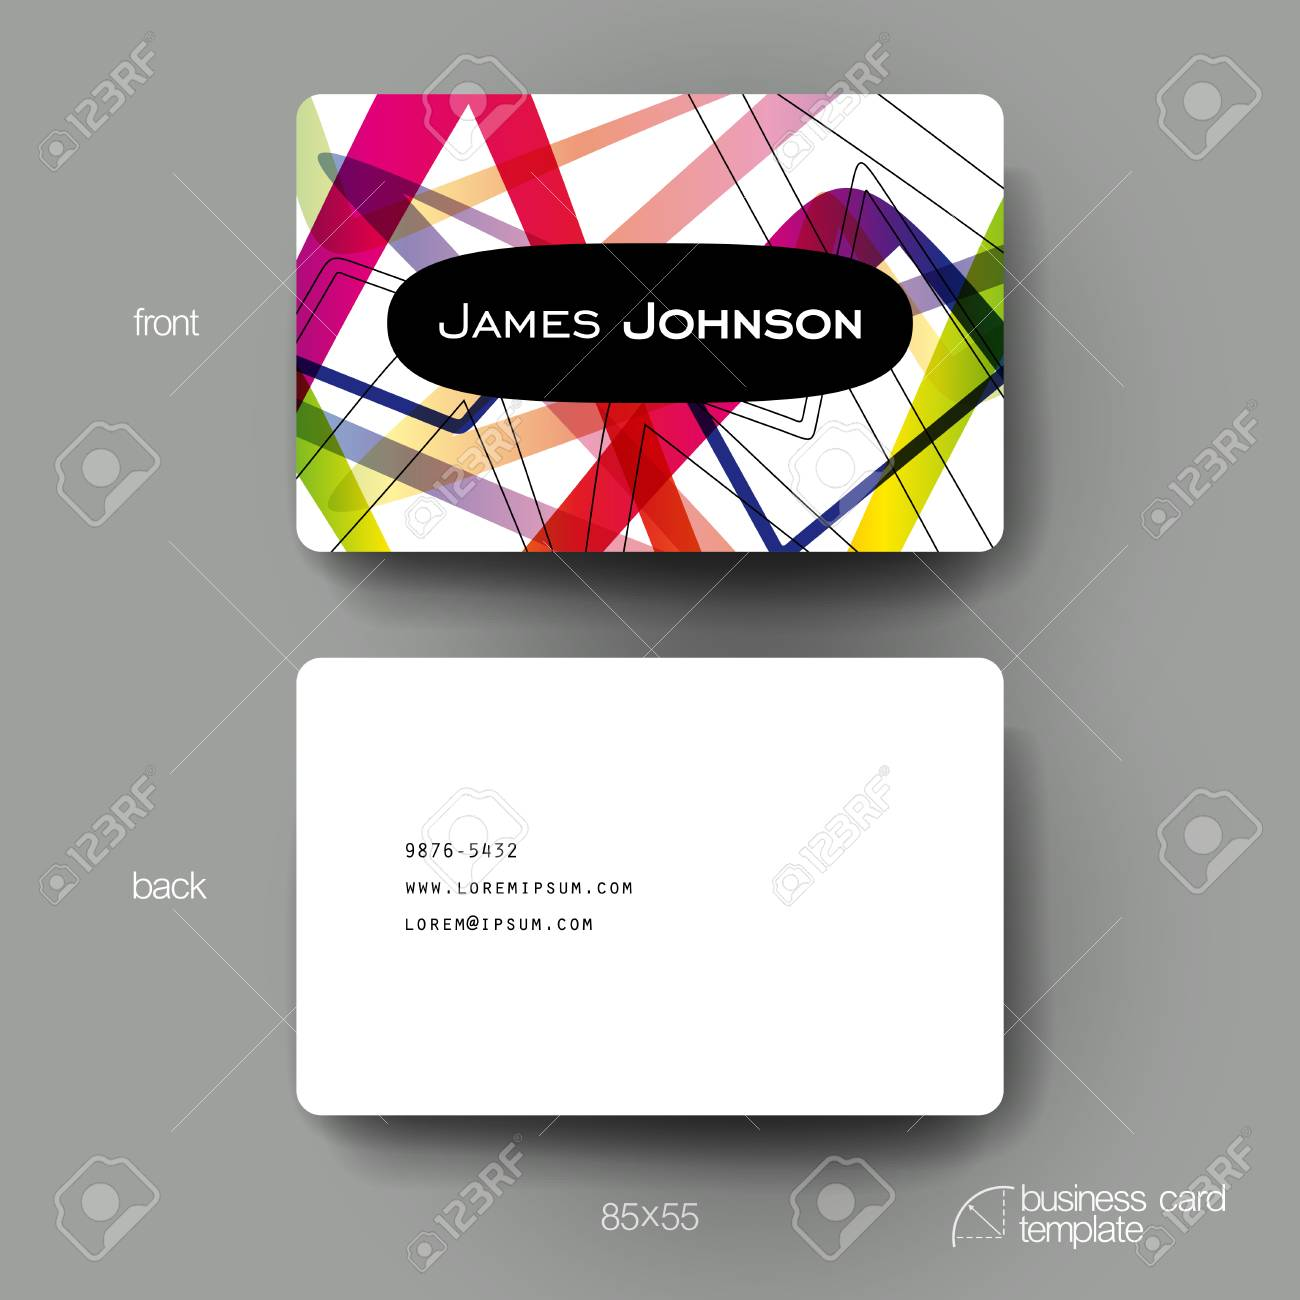 Business Card Vector Template With Abstract Background. Creative ...